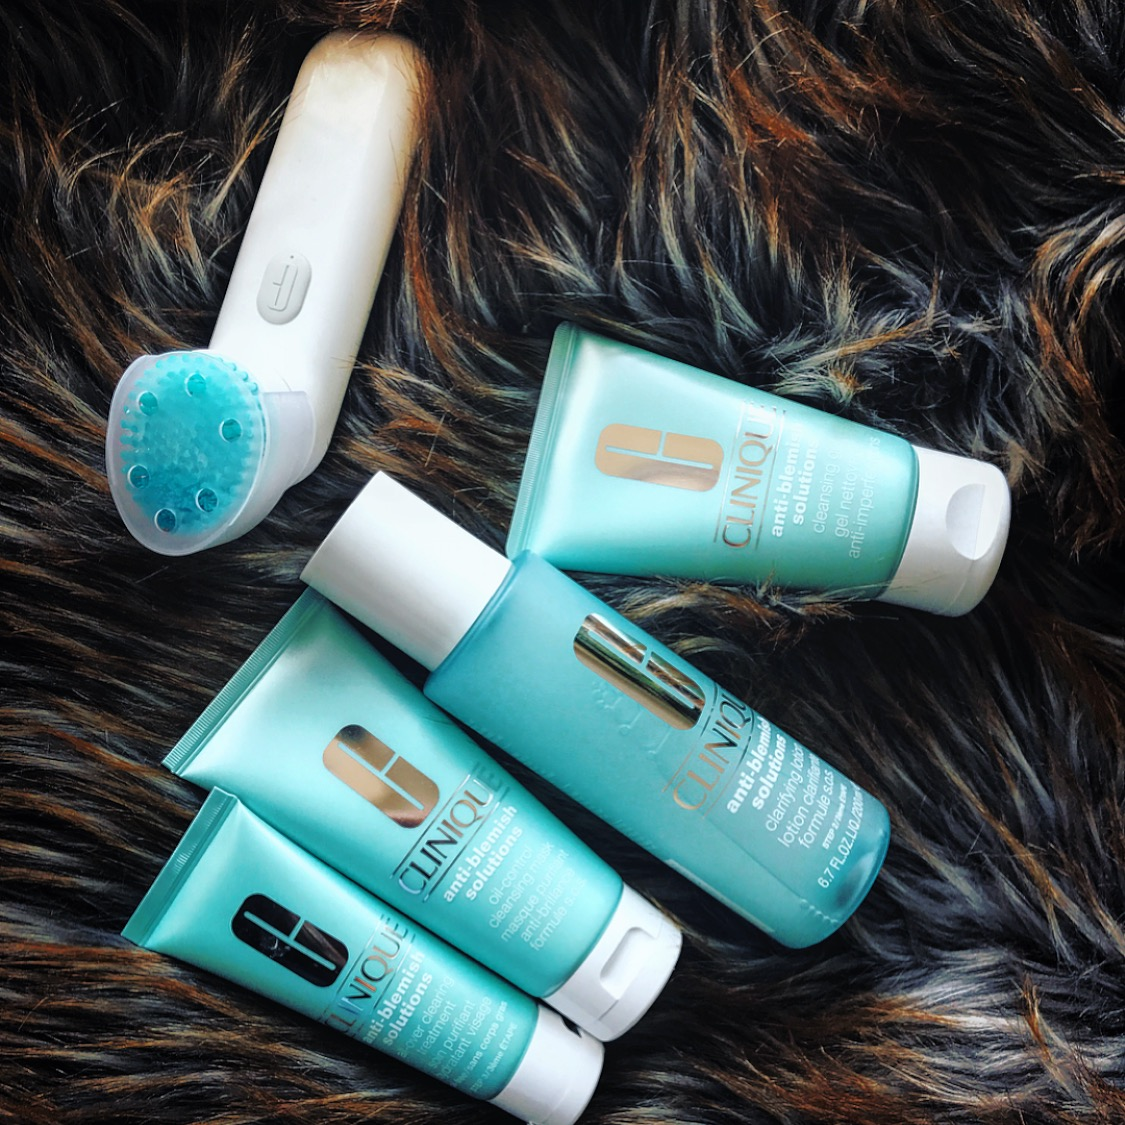 Best acne treatment products for adults - Acne prone skin